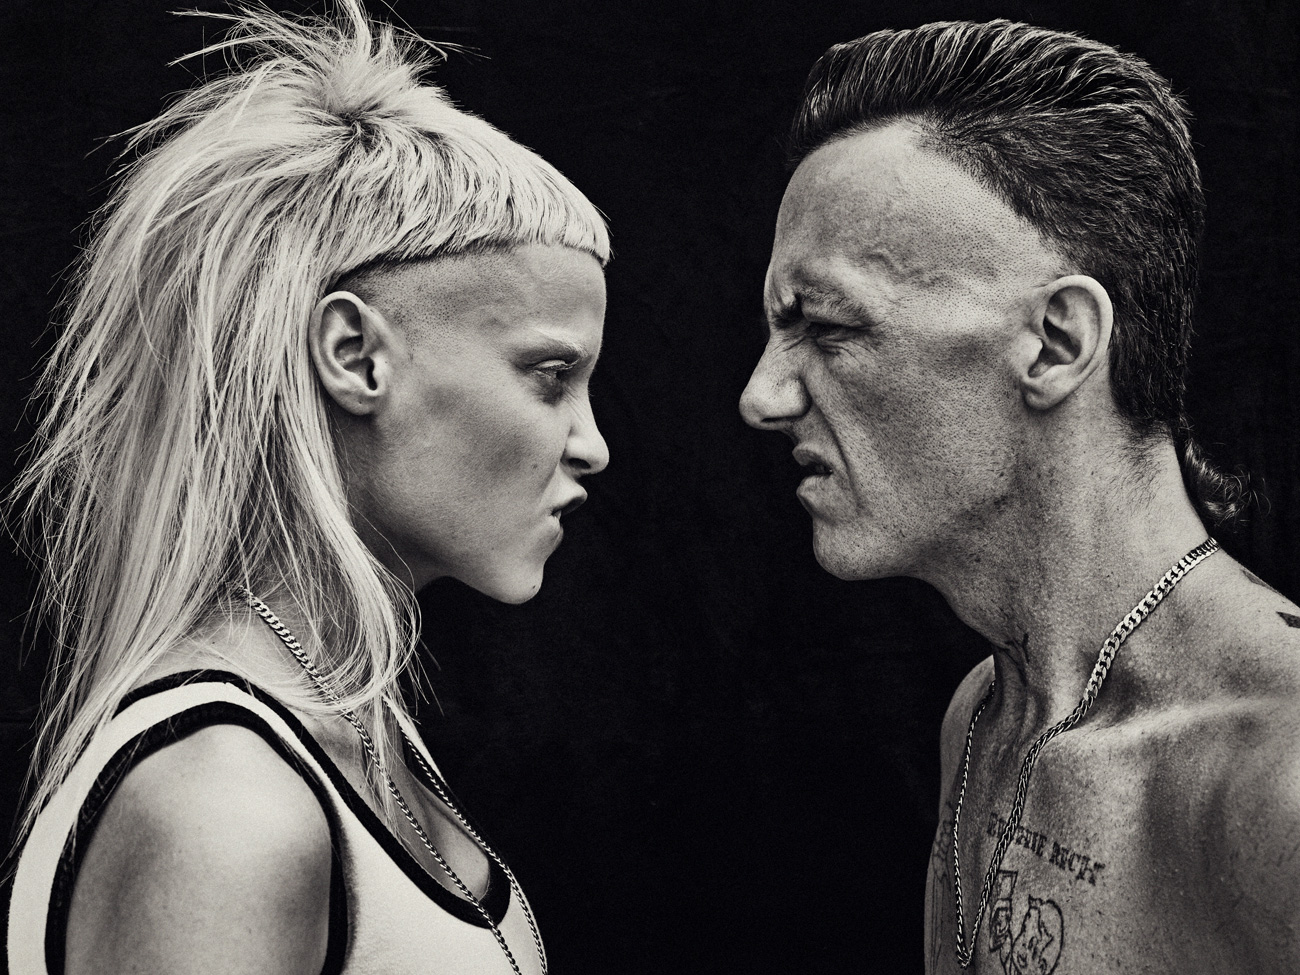 DIE ANTWOORD CLOCK A MILLION VEIWS IN LESS THAN 24HRS FOR NEW SINGLE img die antwoord 6 12550734691